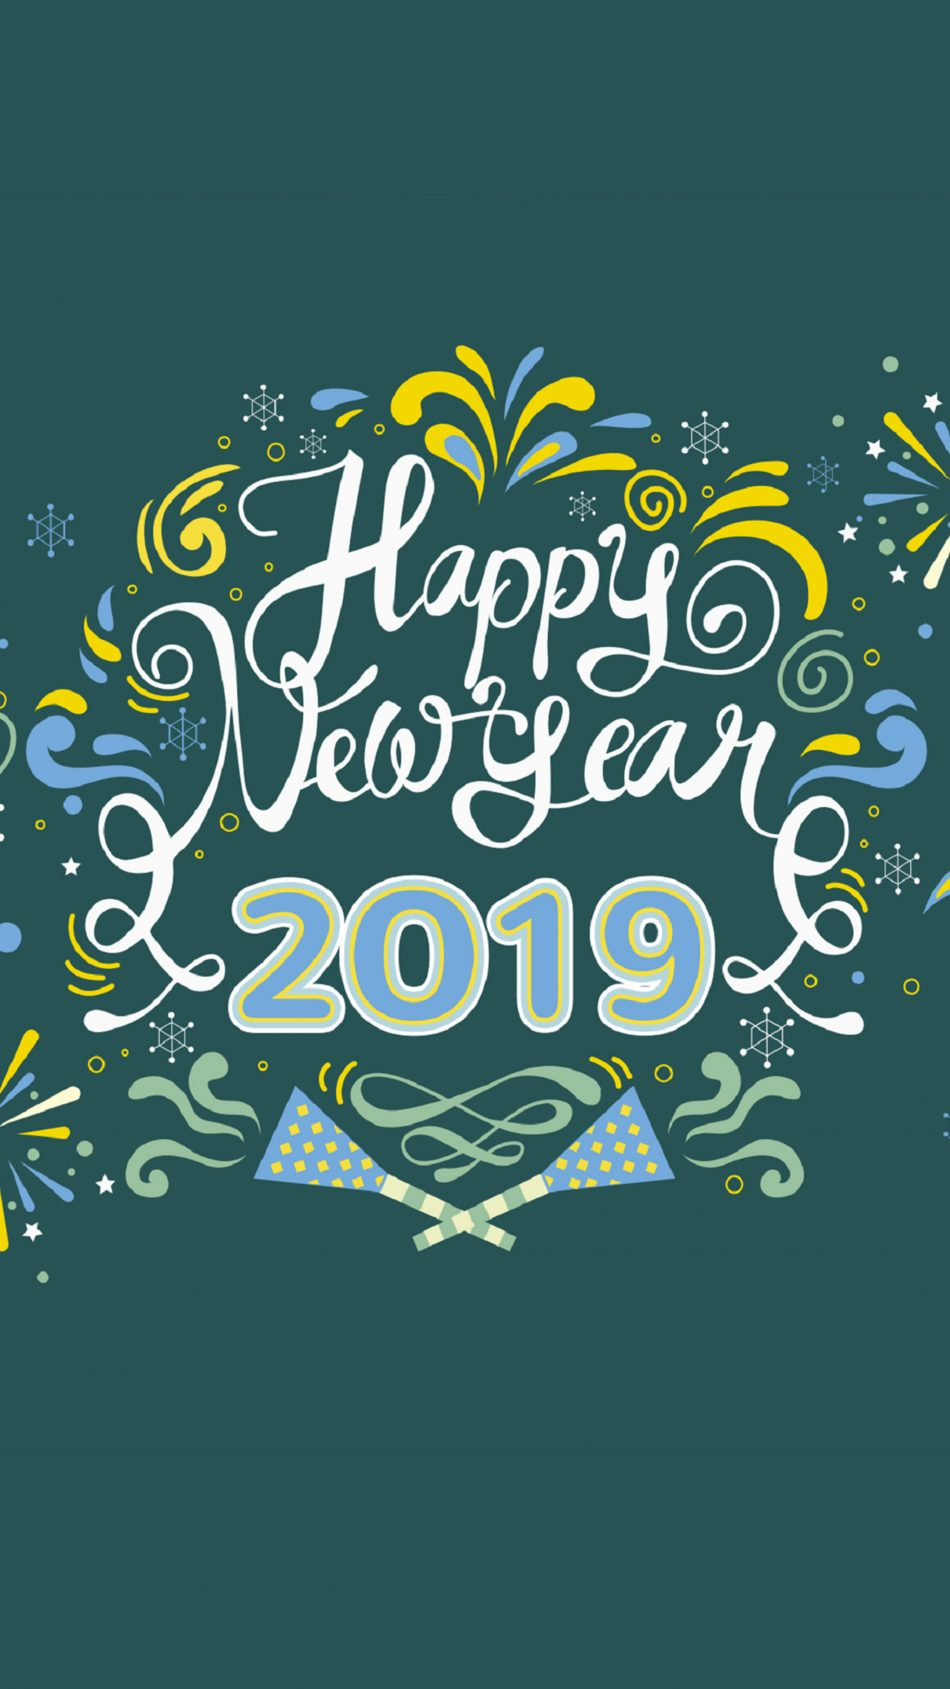 Happy New Year 2019 4K Ultra HD Mobile Wallpaper